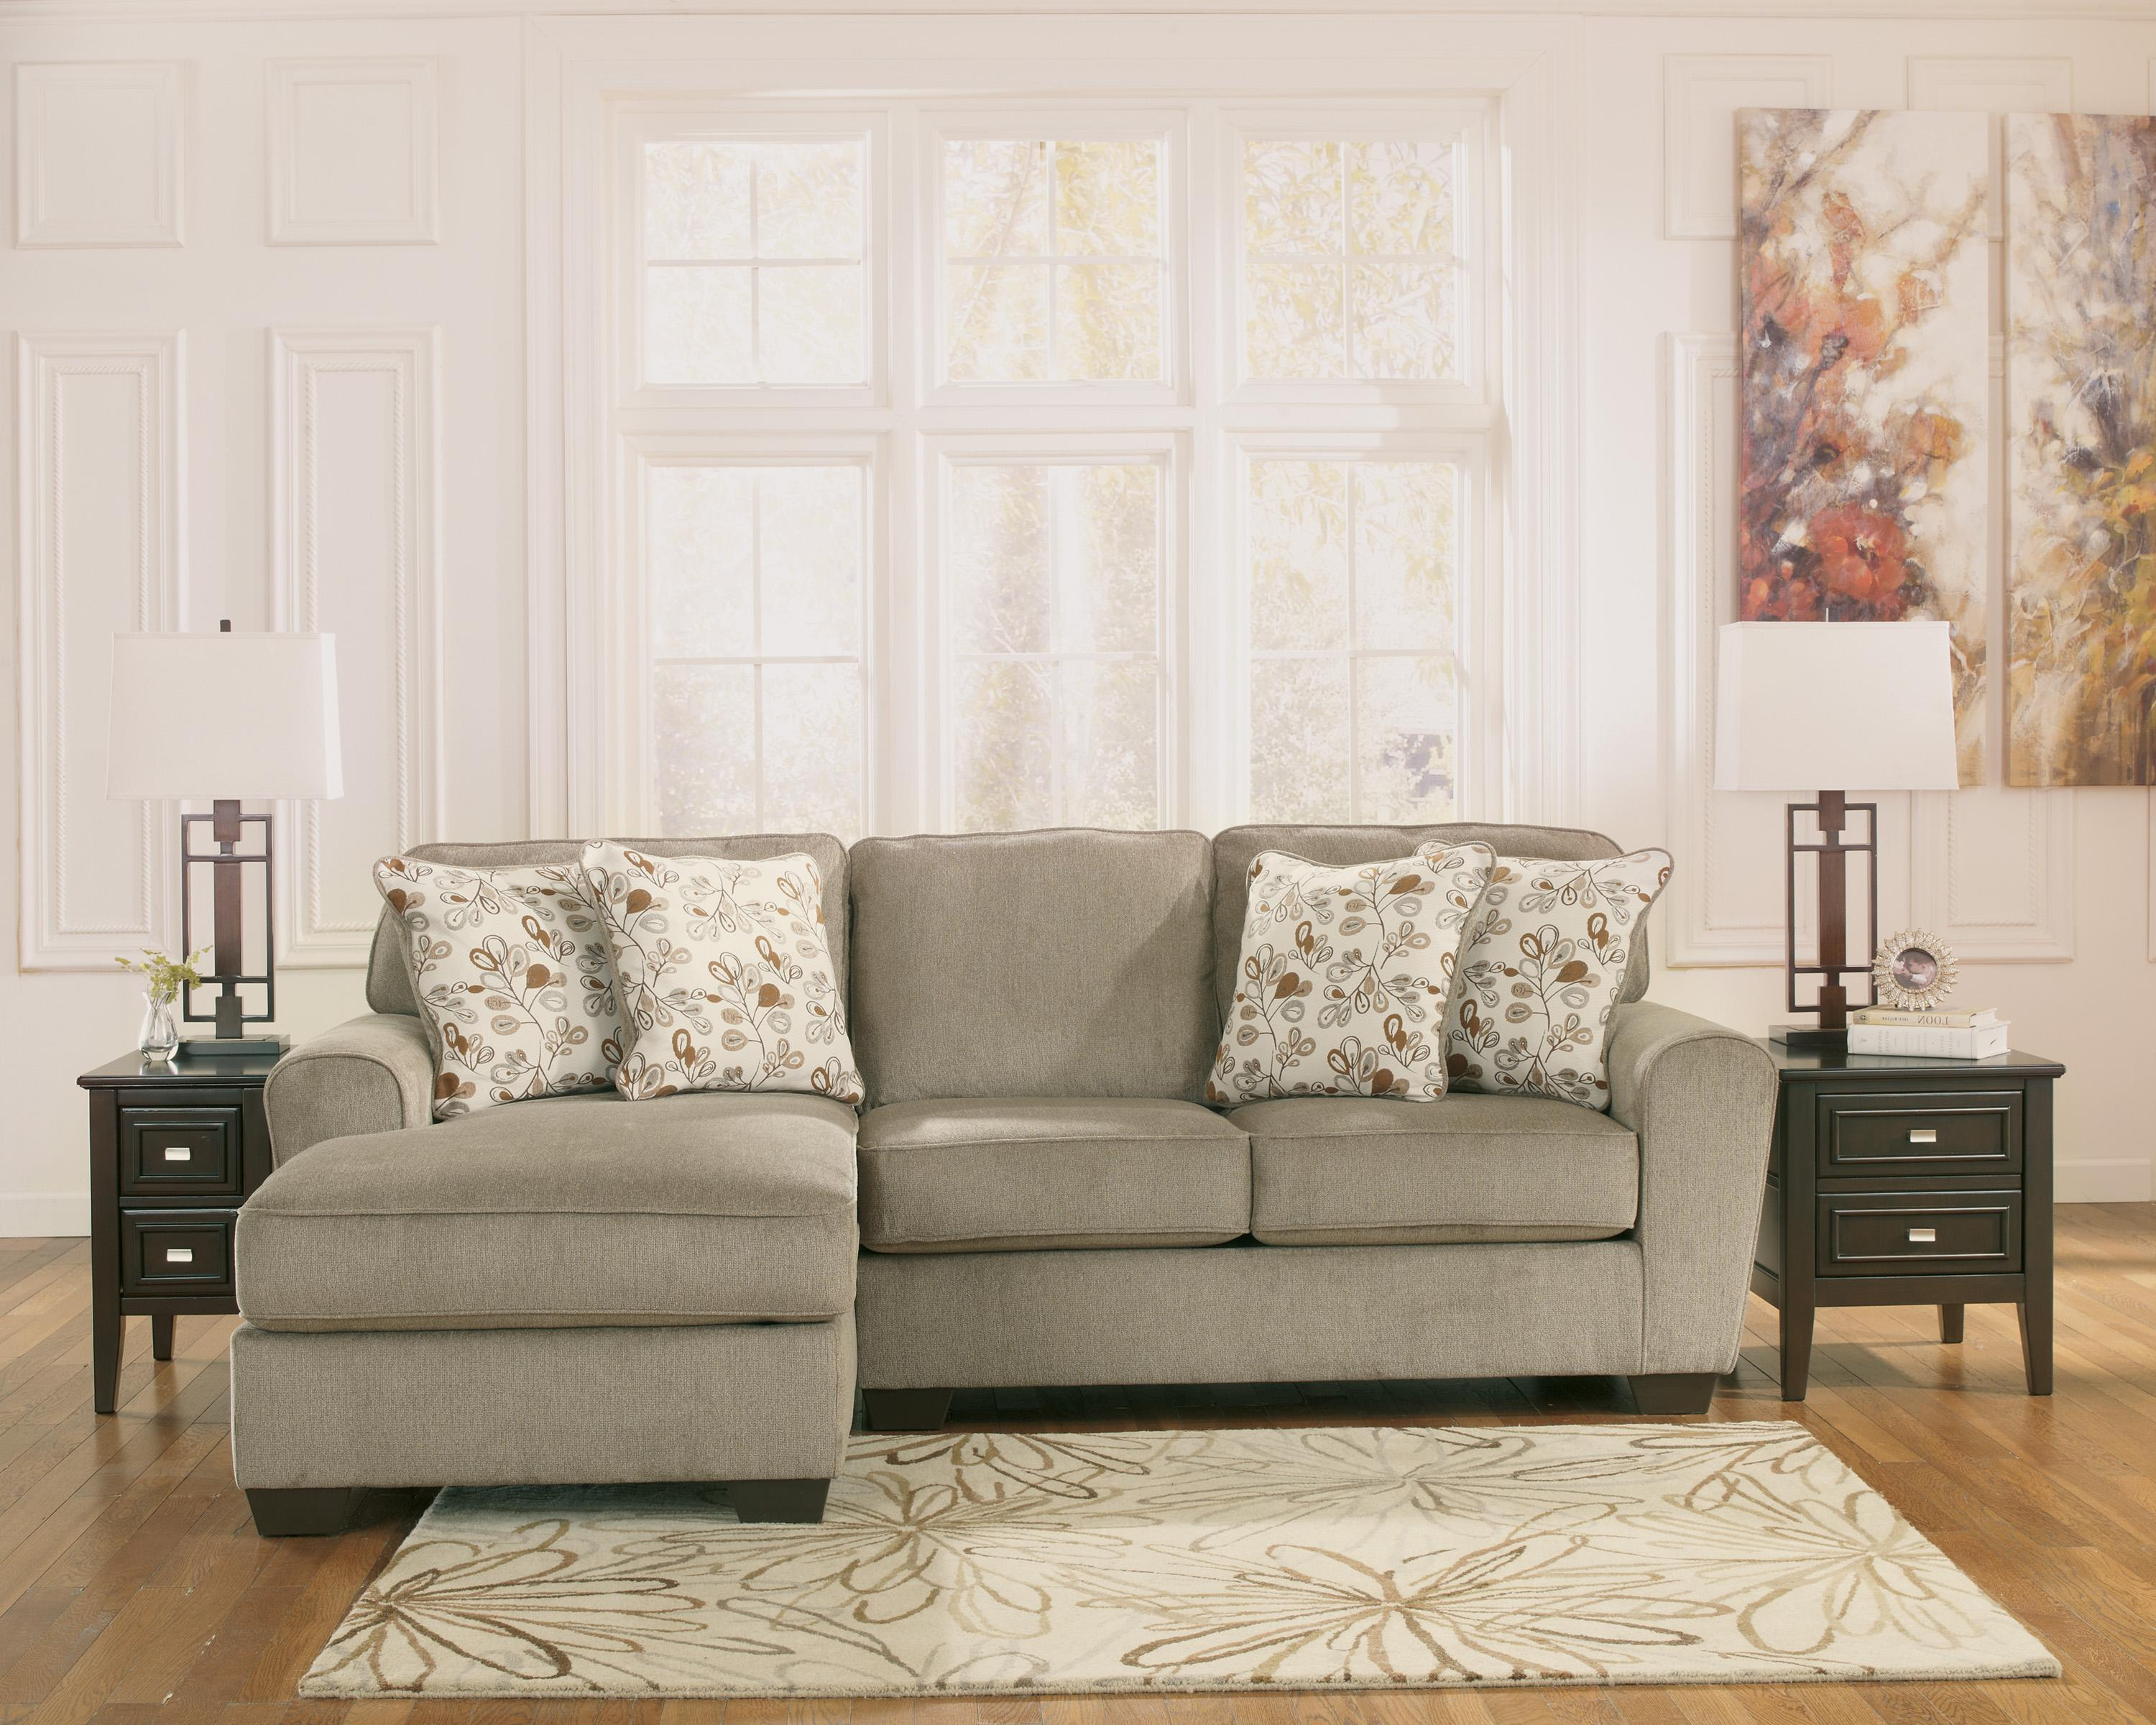 item rotmans sectional regatta new couch lsg sofas ri couches ma and england worcester collections sofa leather contemporary boston providence